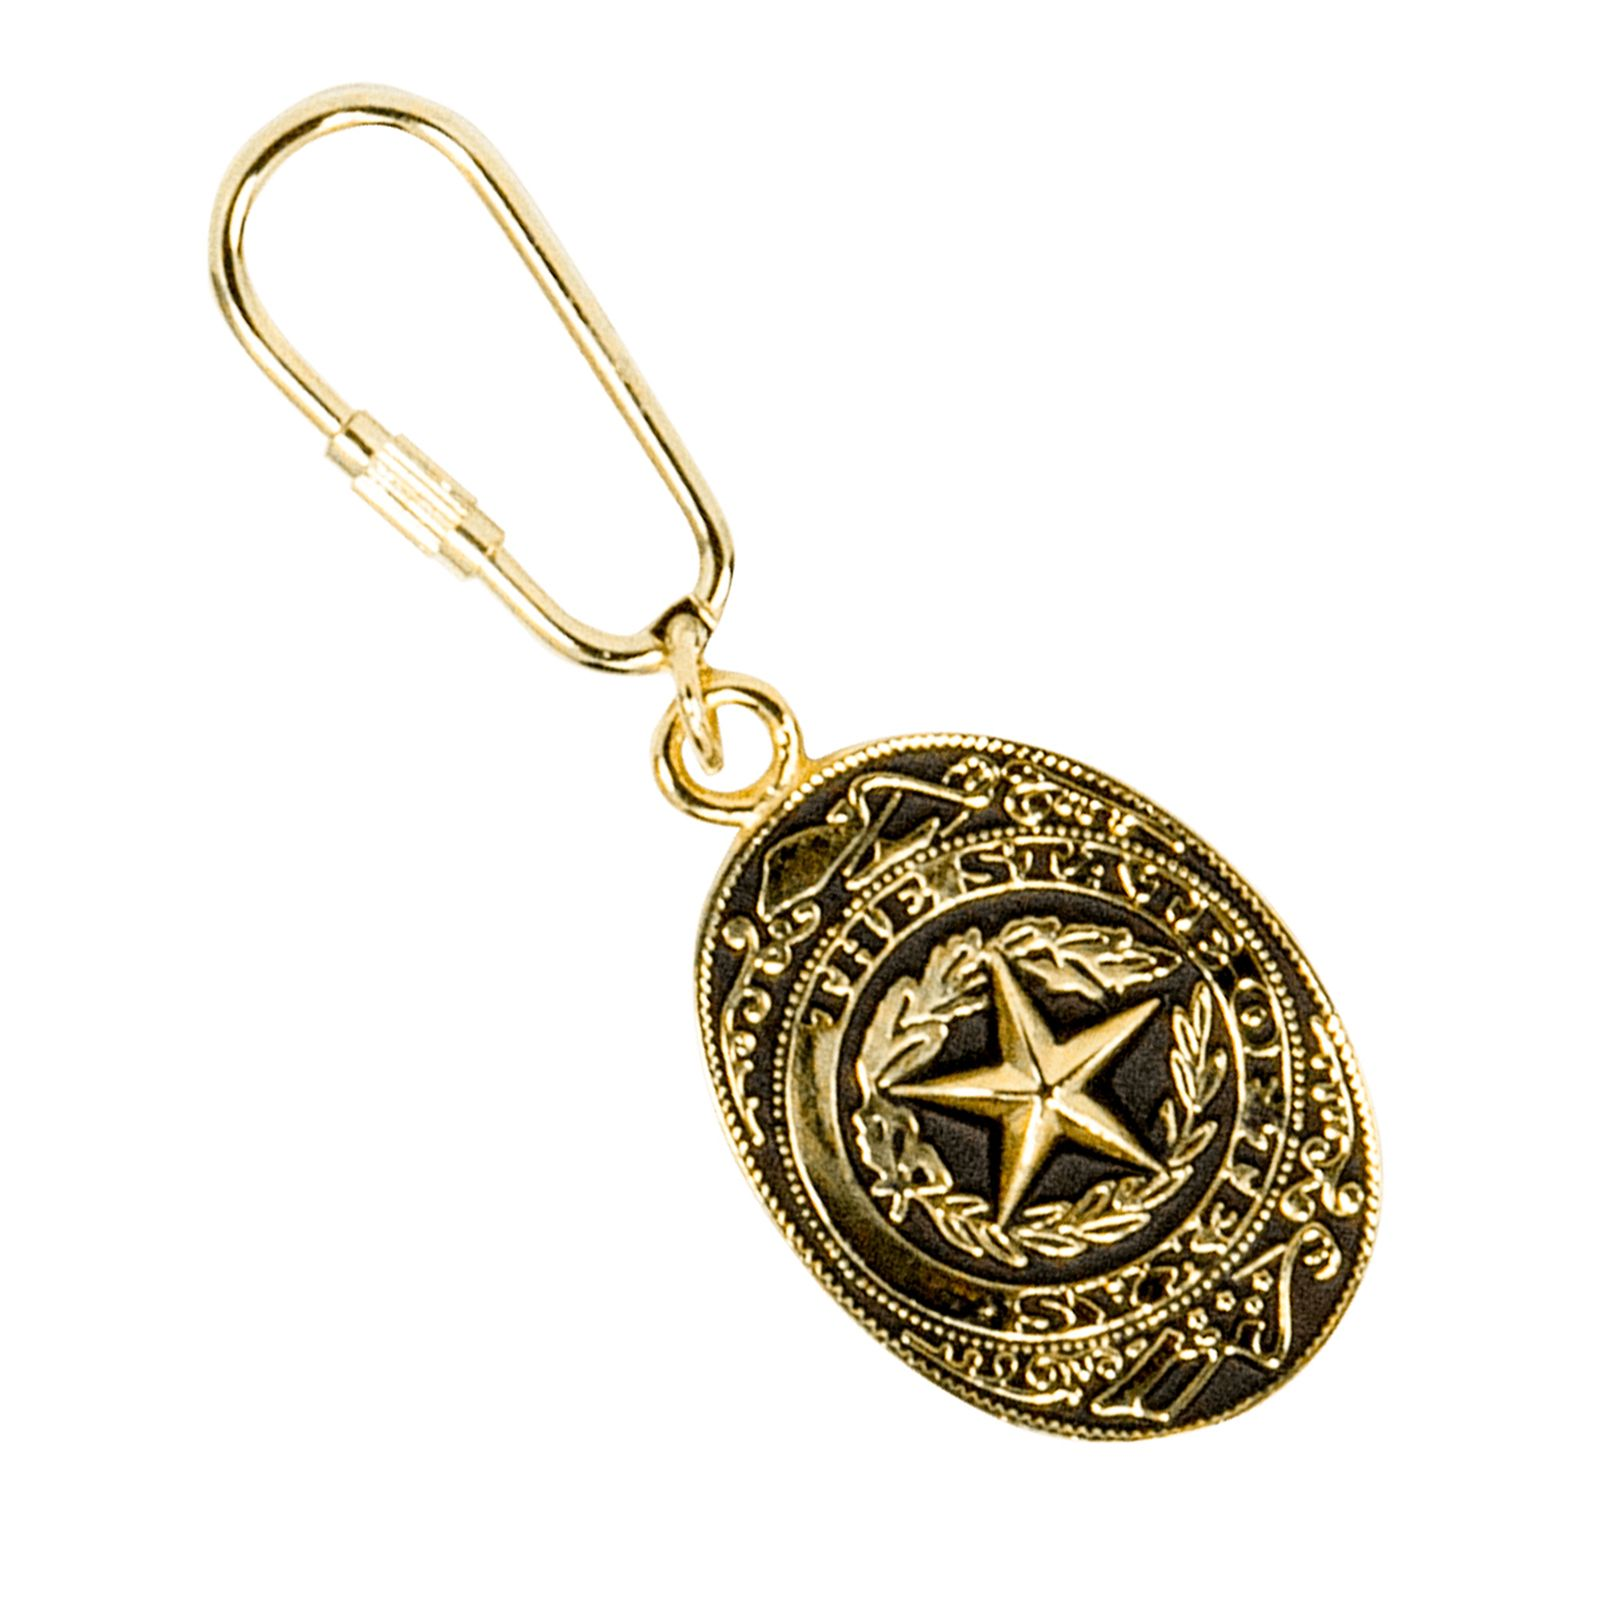 Gold State Seal Key Chain